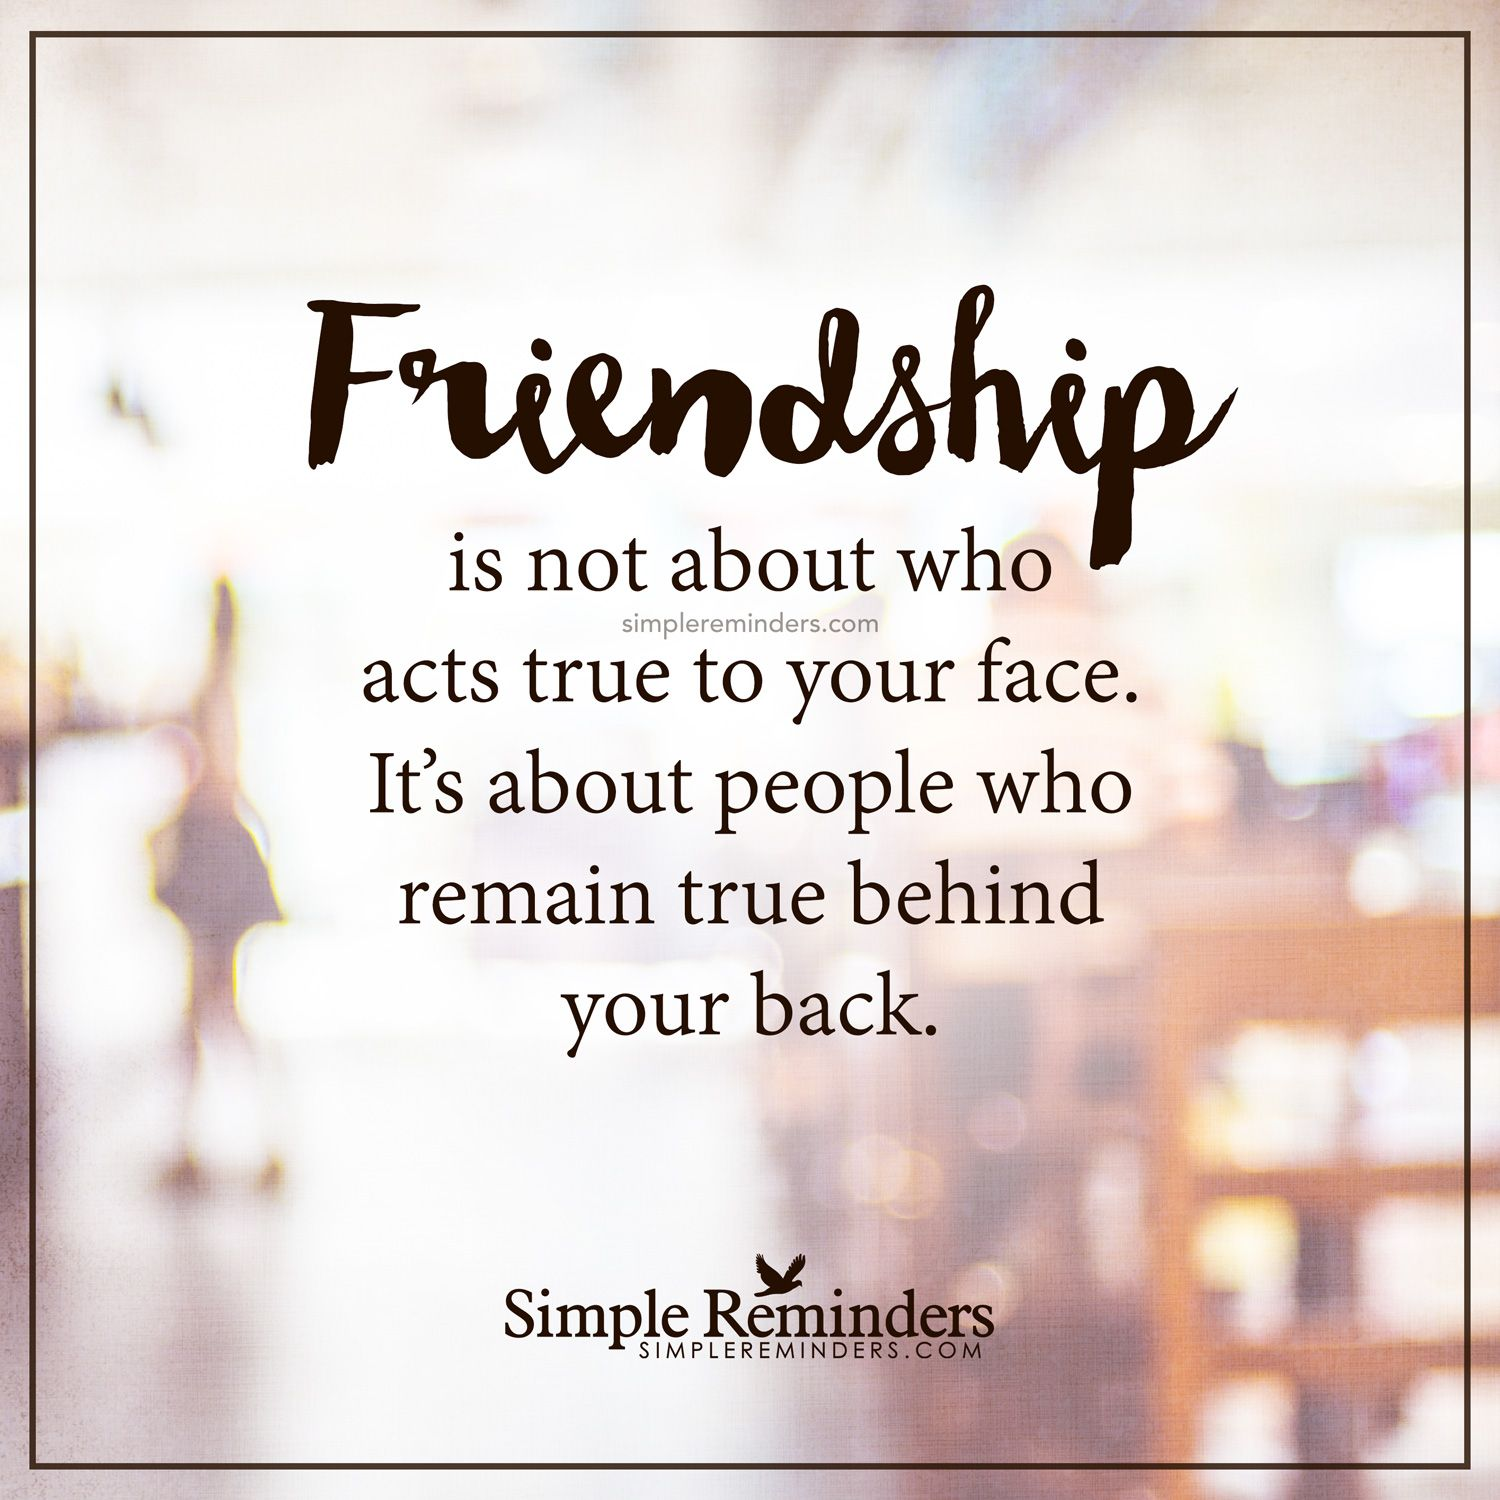 Quotes On Wah A True Friend Is: Friendship Is Not Friendship Is Not About Who Acts True To